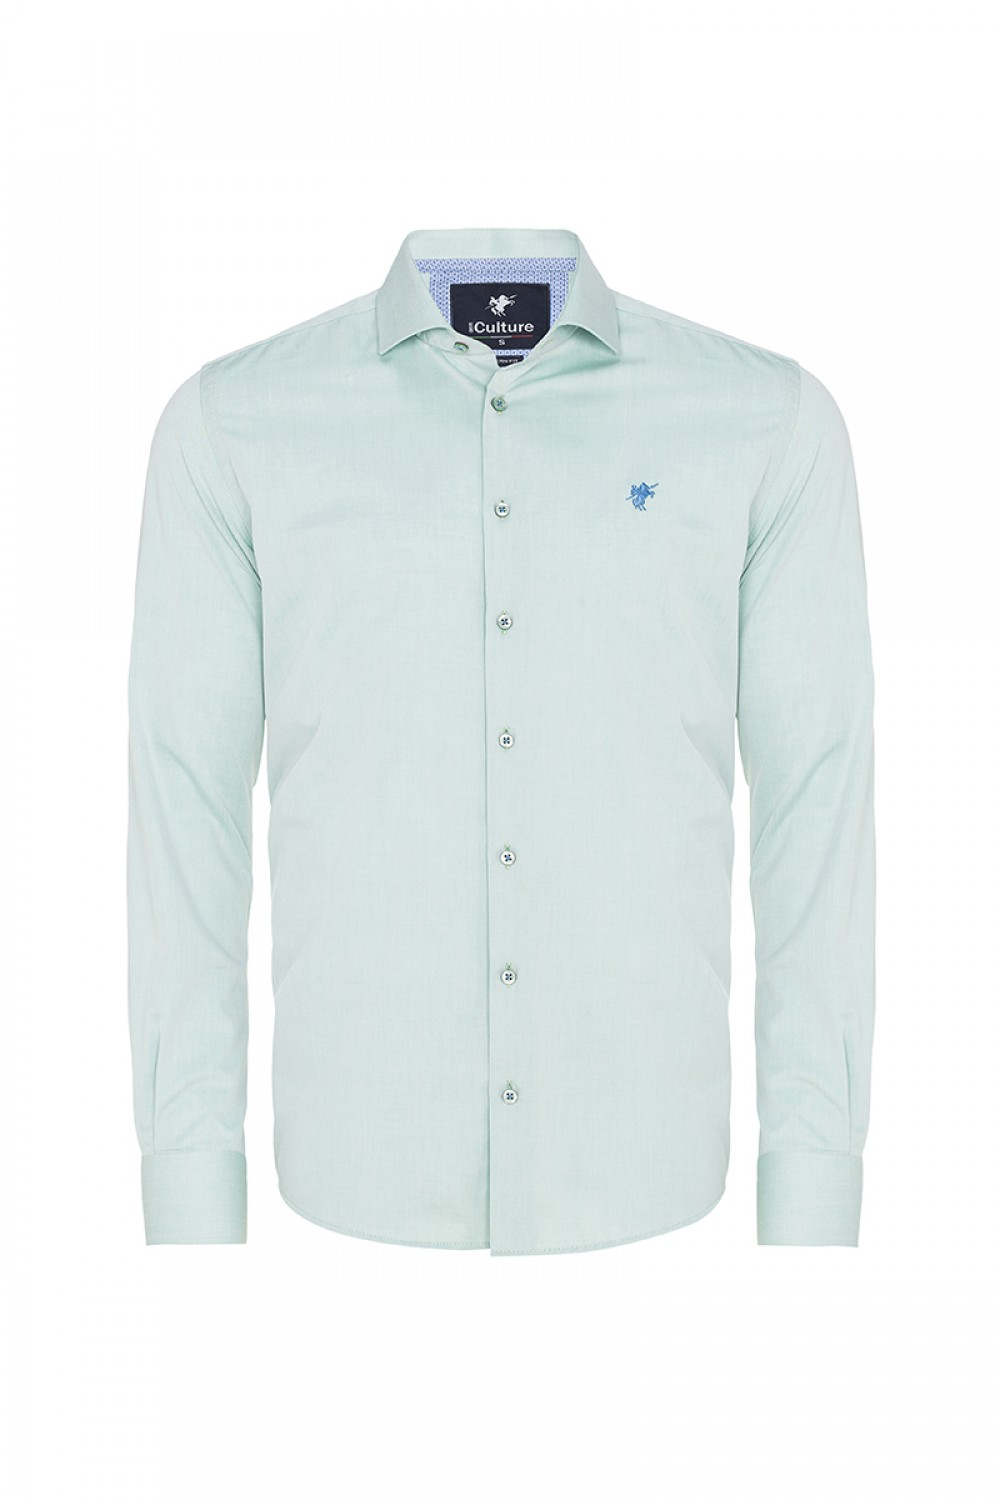 Men's Shirt Kent Collar Green